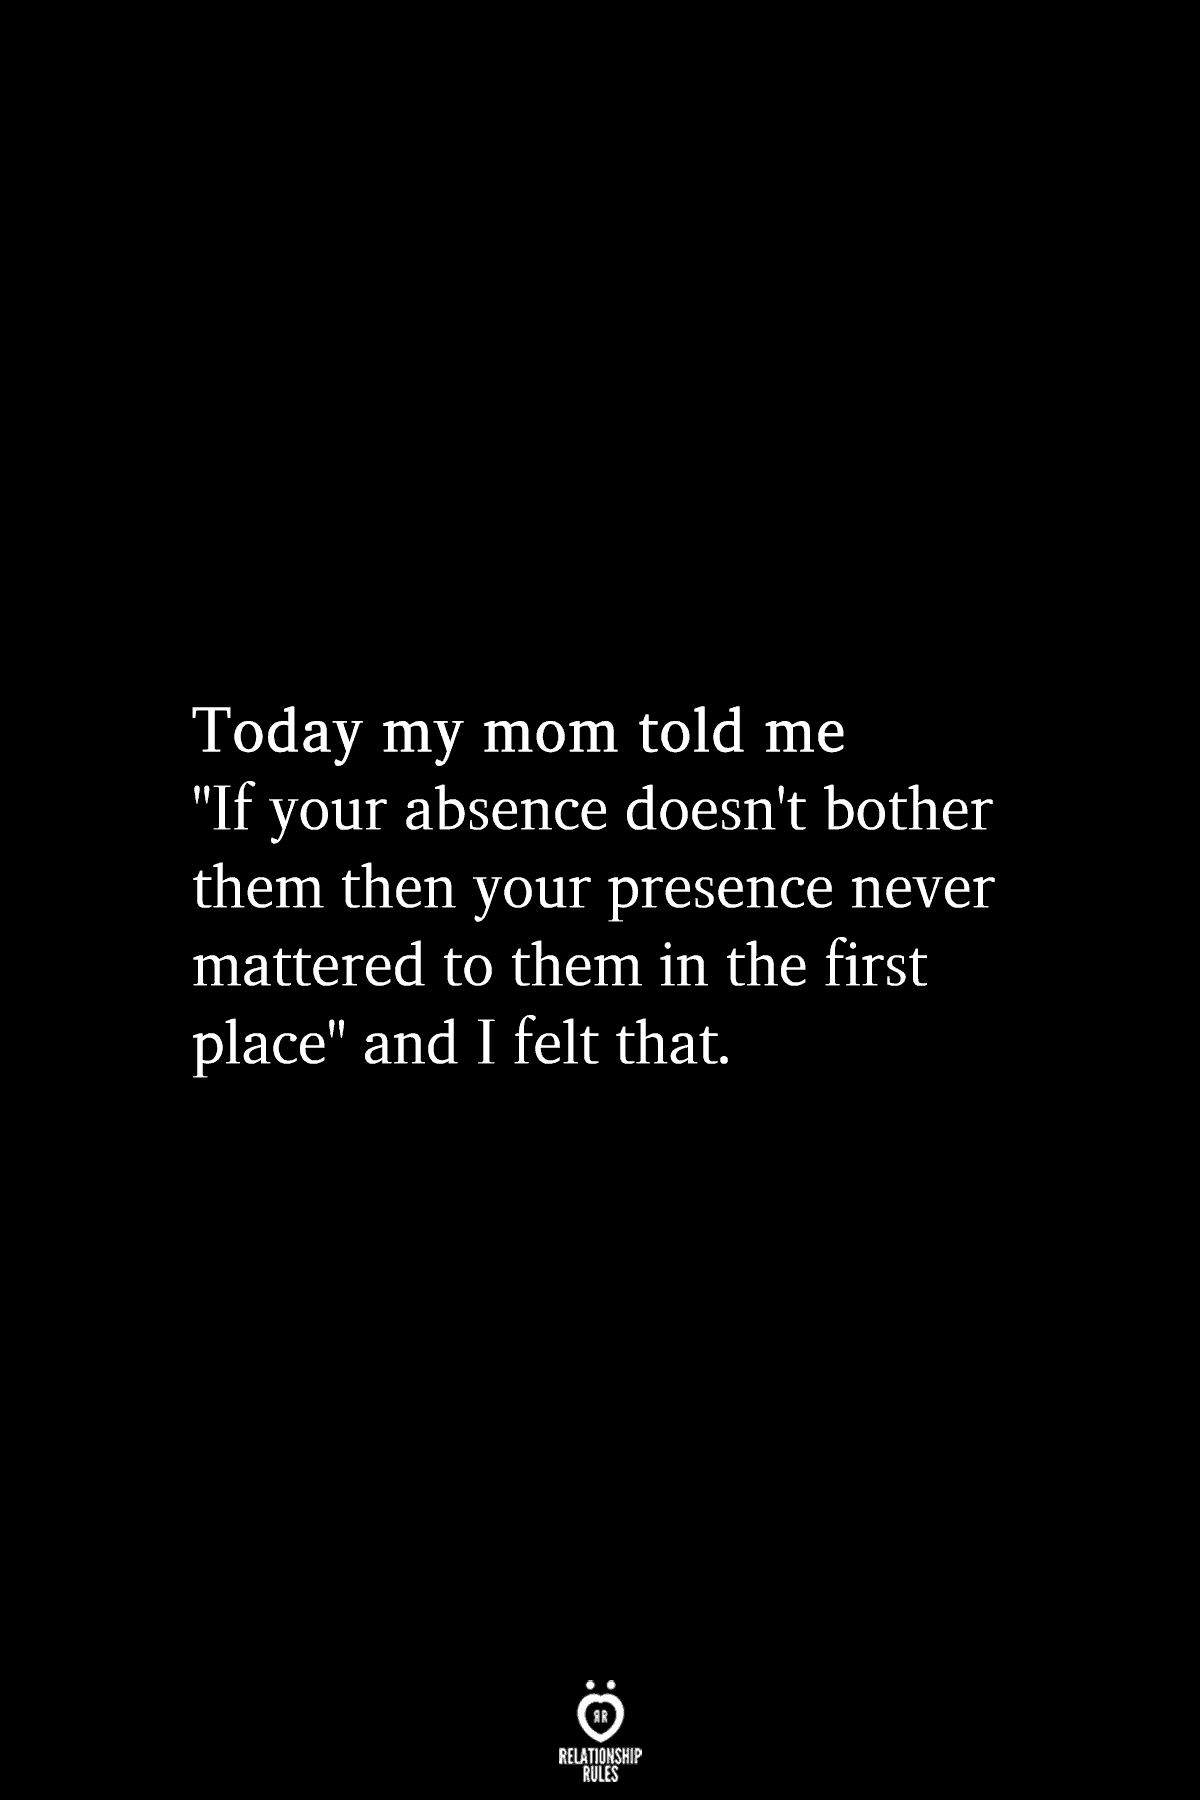 Today My Mom Told Me If Your Absence Doesn't Bother Them